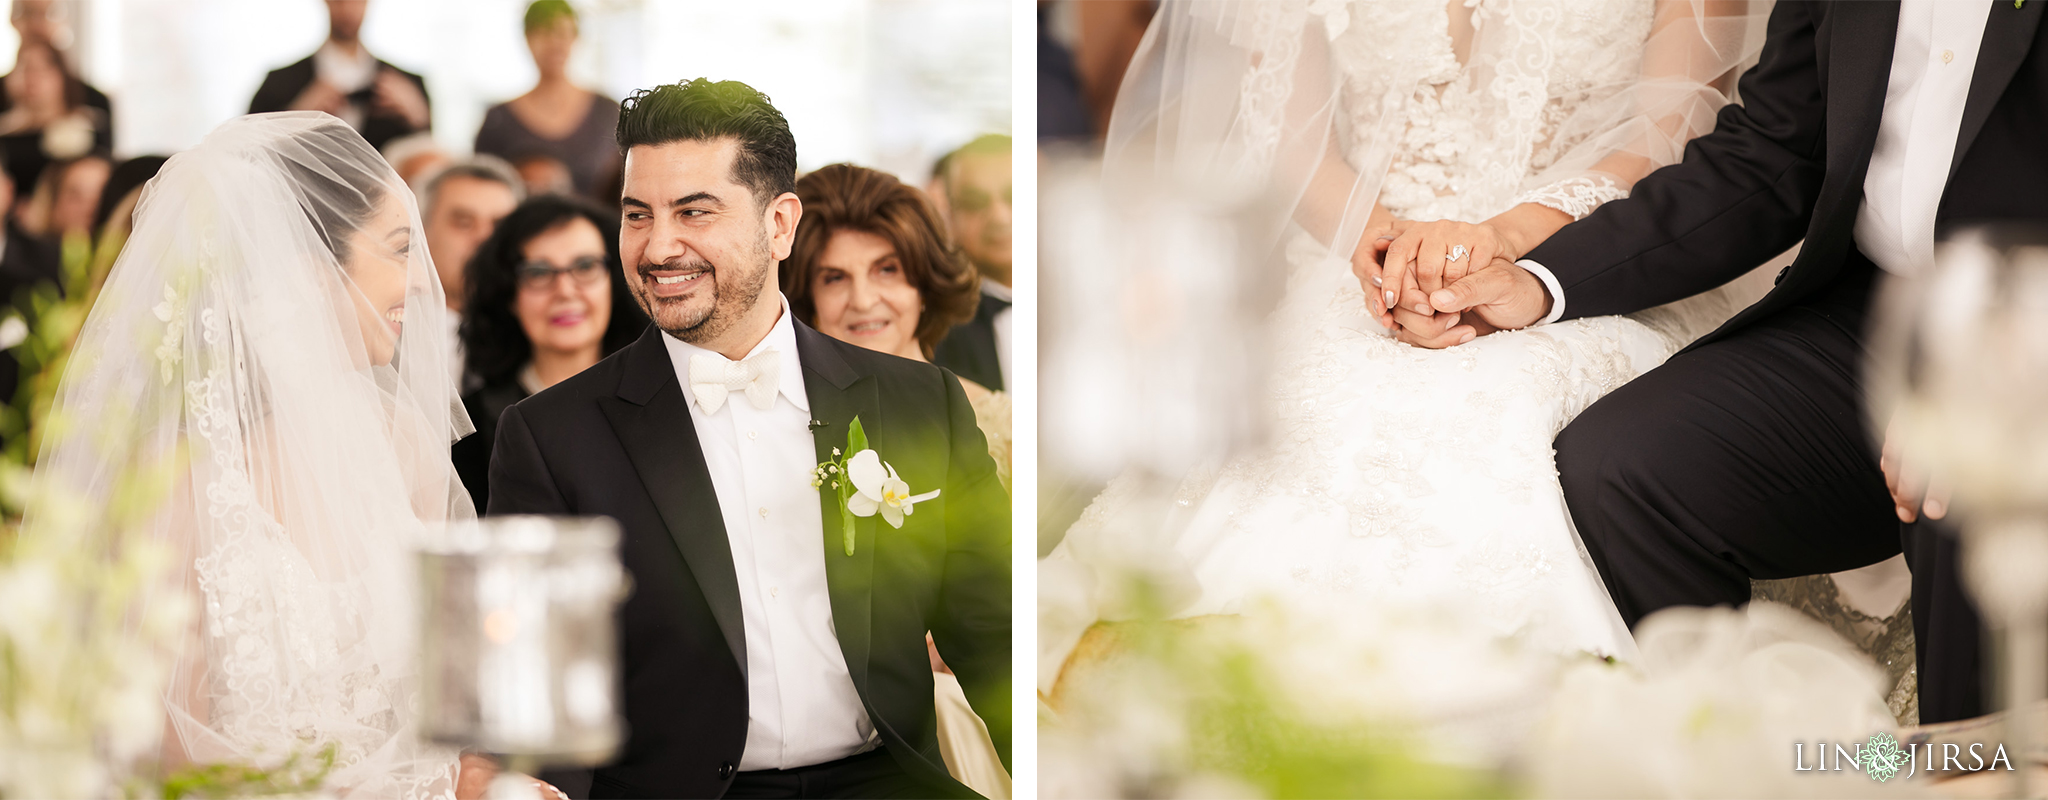 19 SkyStudio Los Angeles Persian Wedding Photography